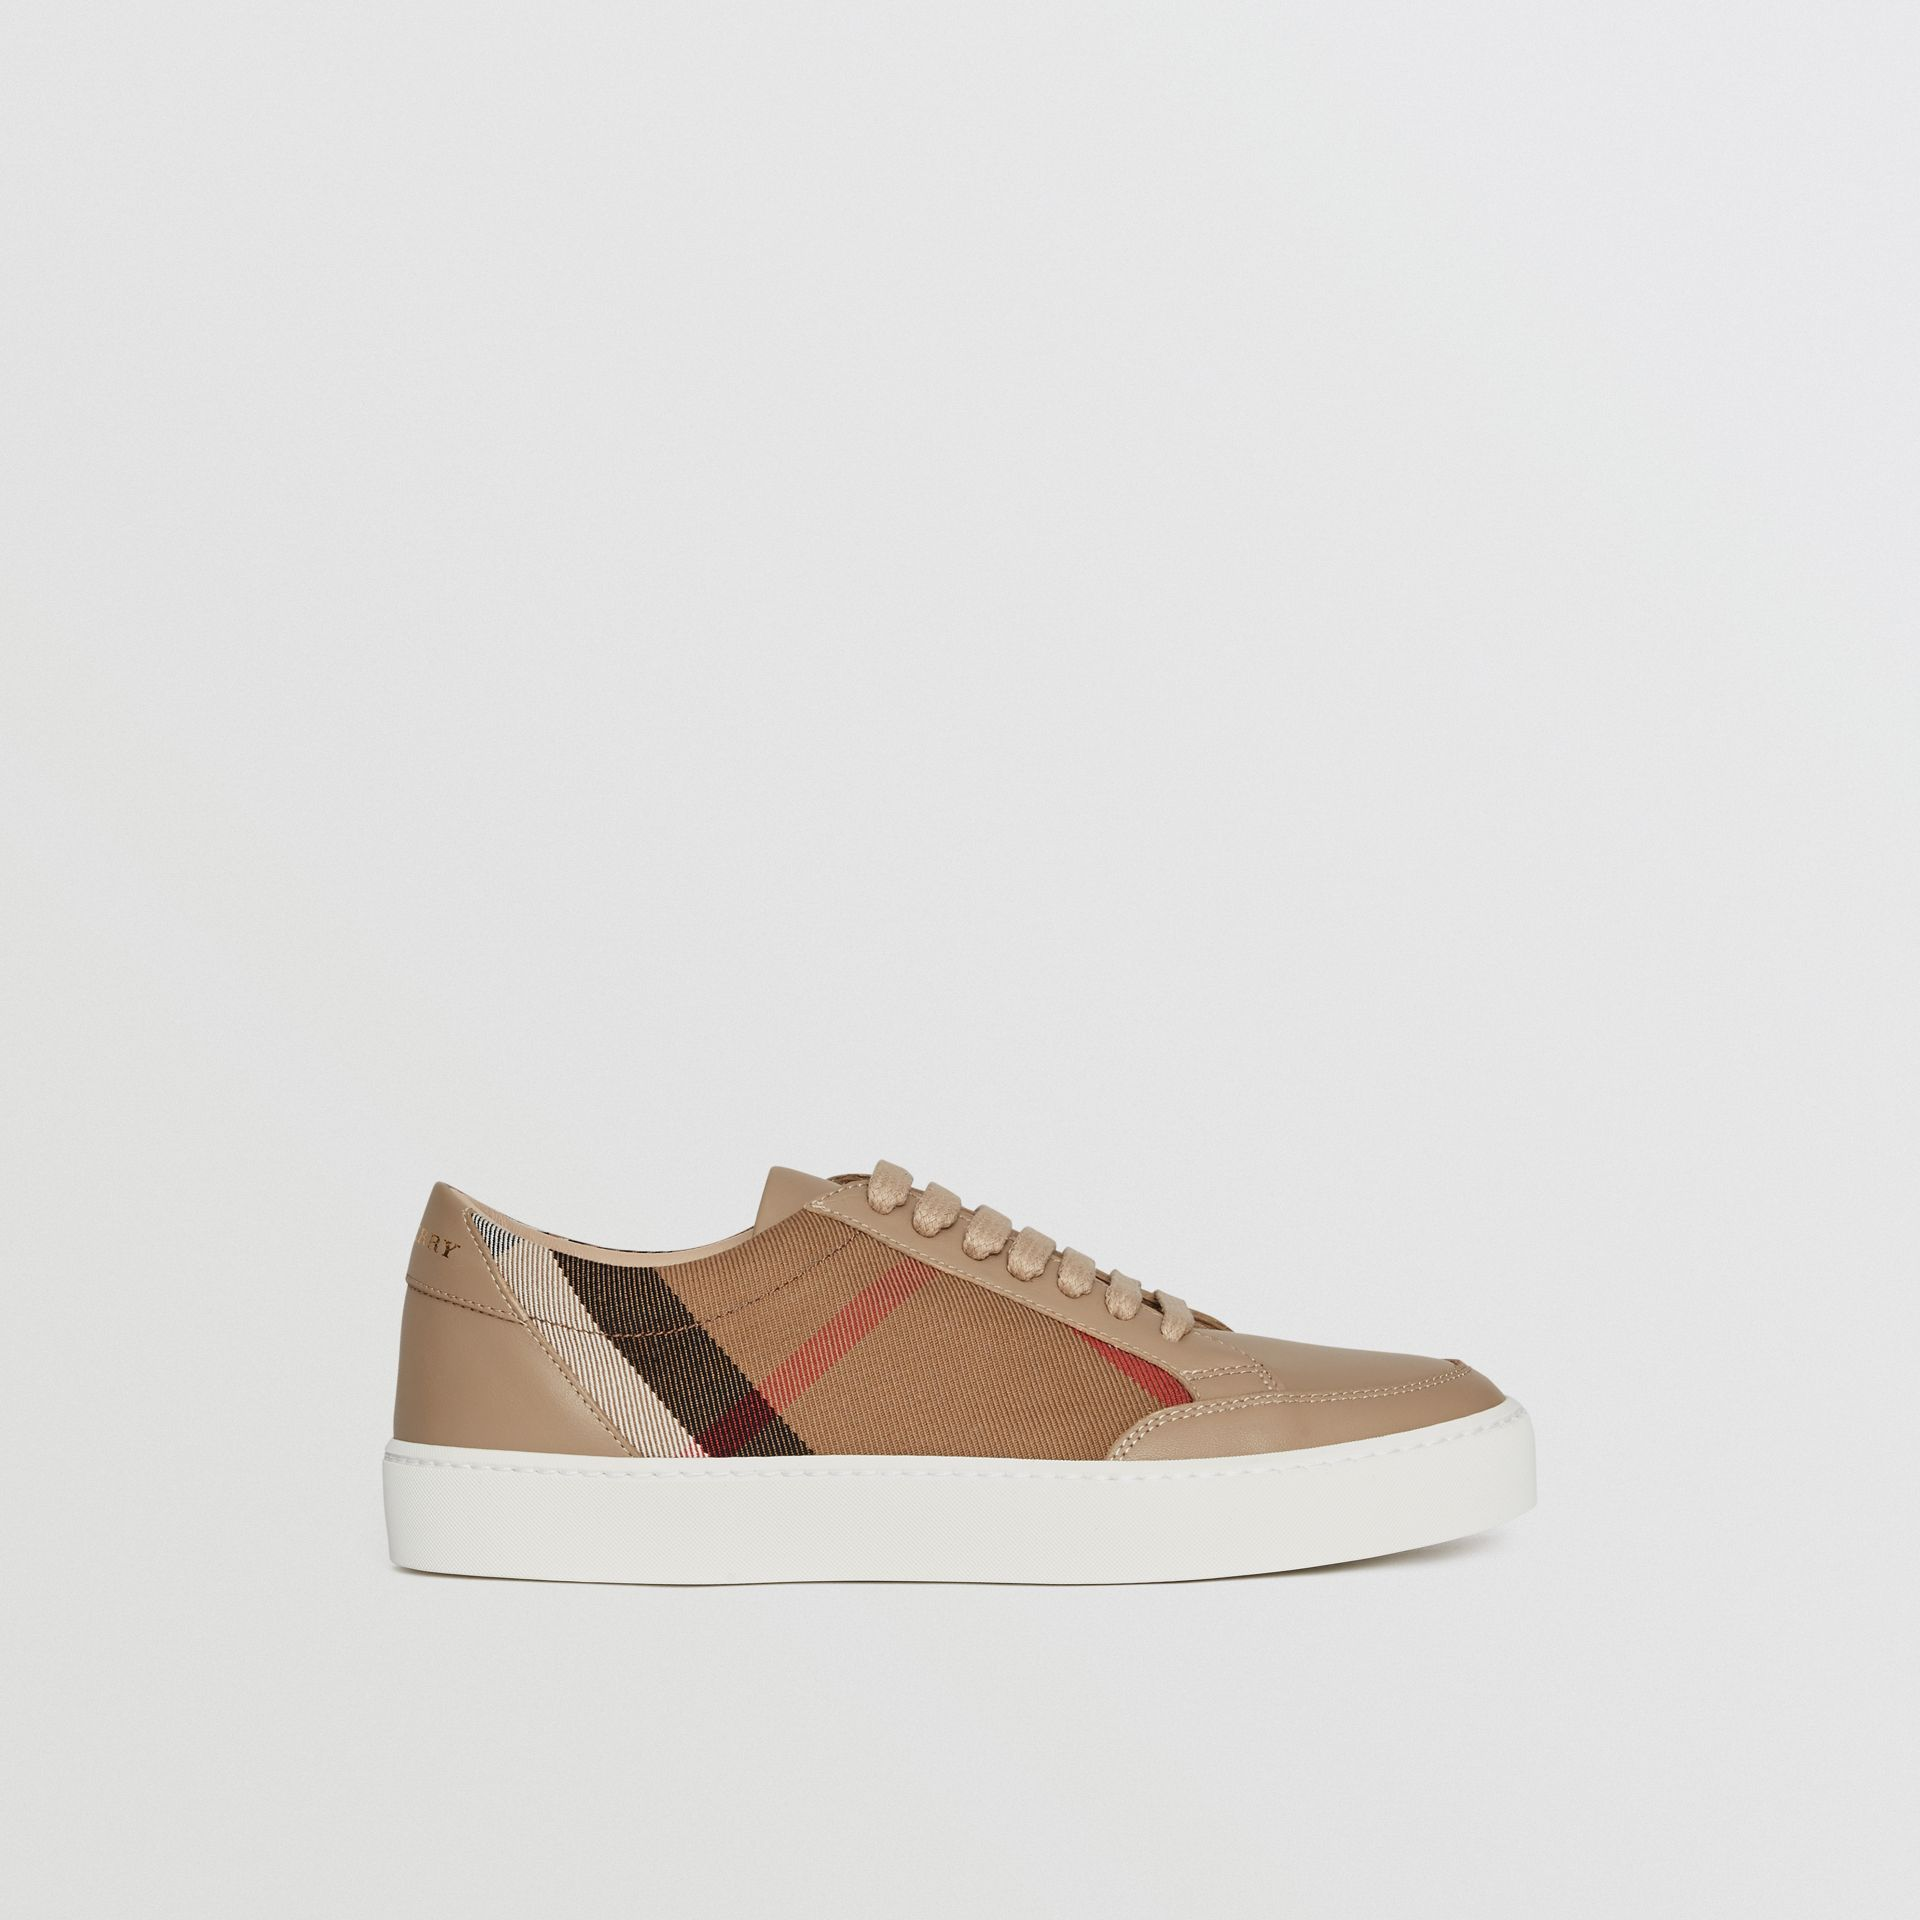 Check Detail Leather Sneakers in House Check/ Nude - Women | Burberry - gallery image 5